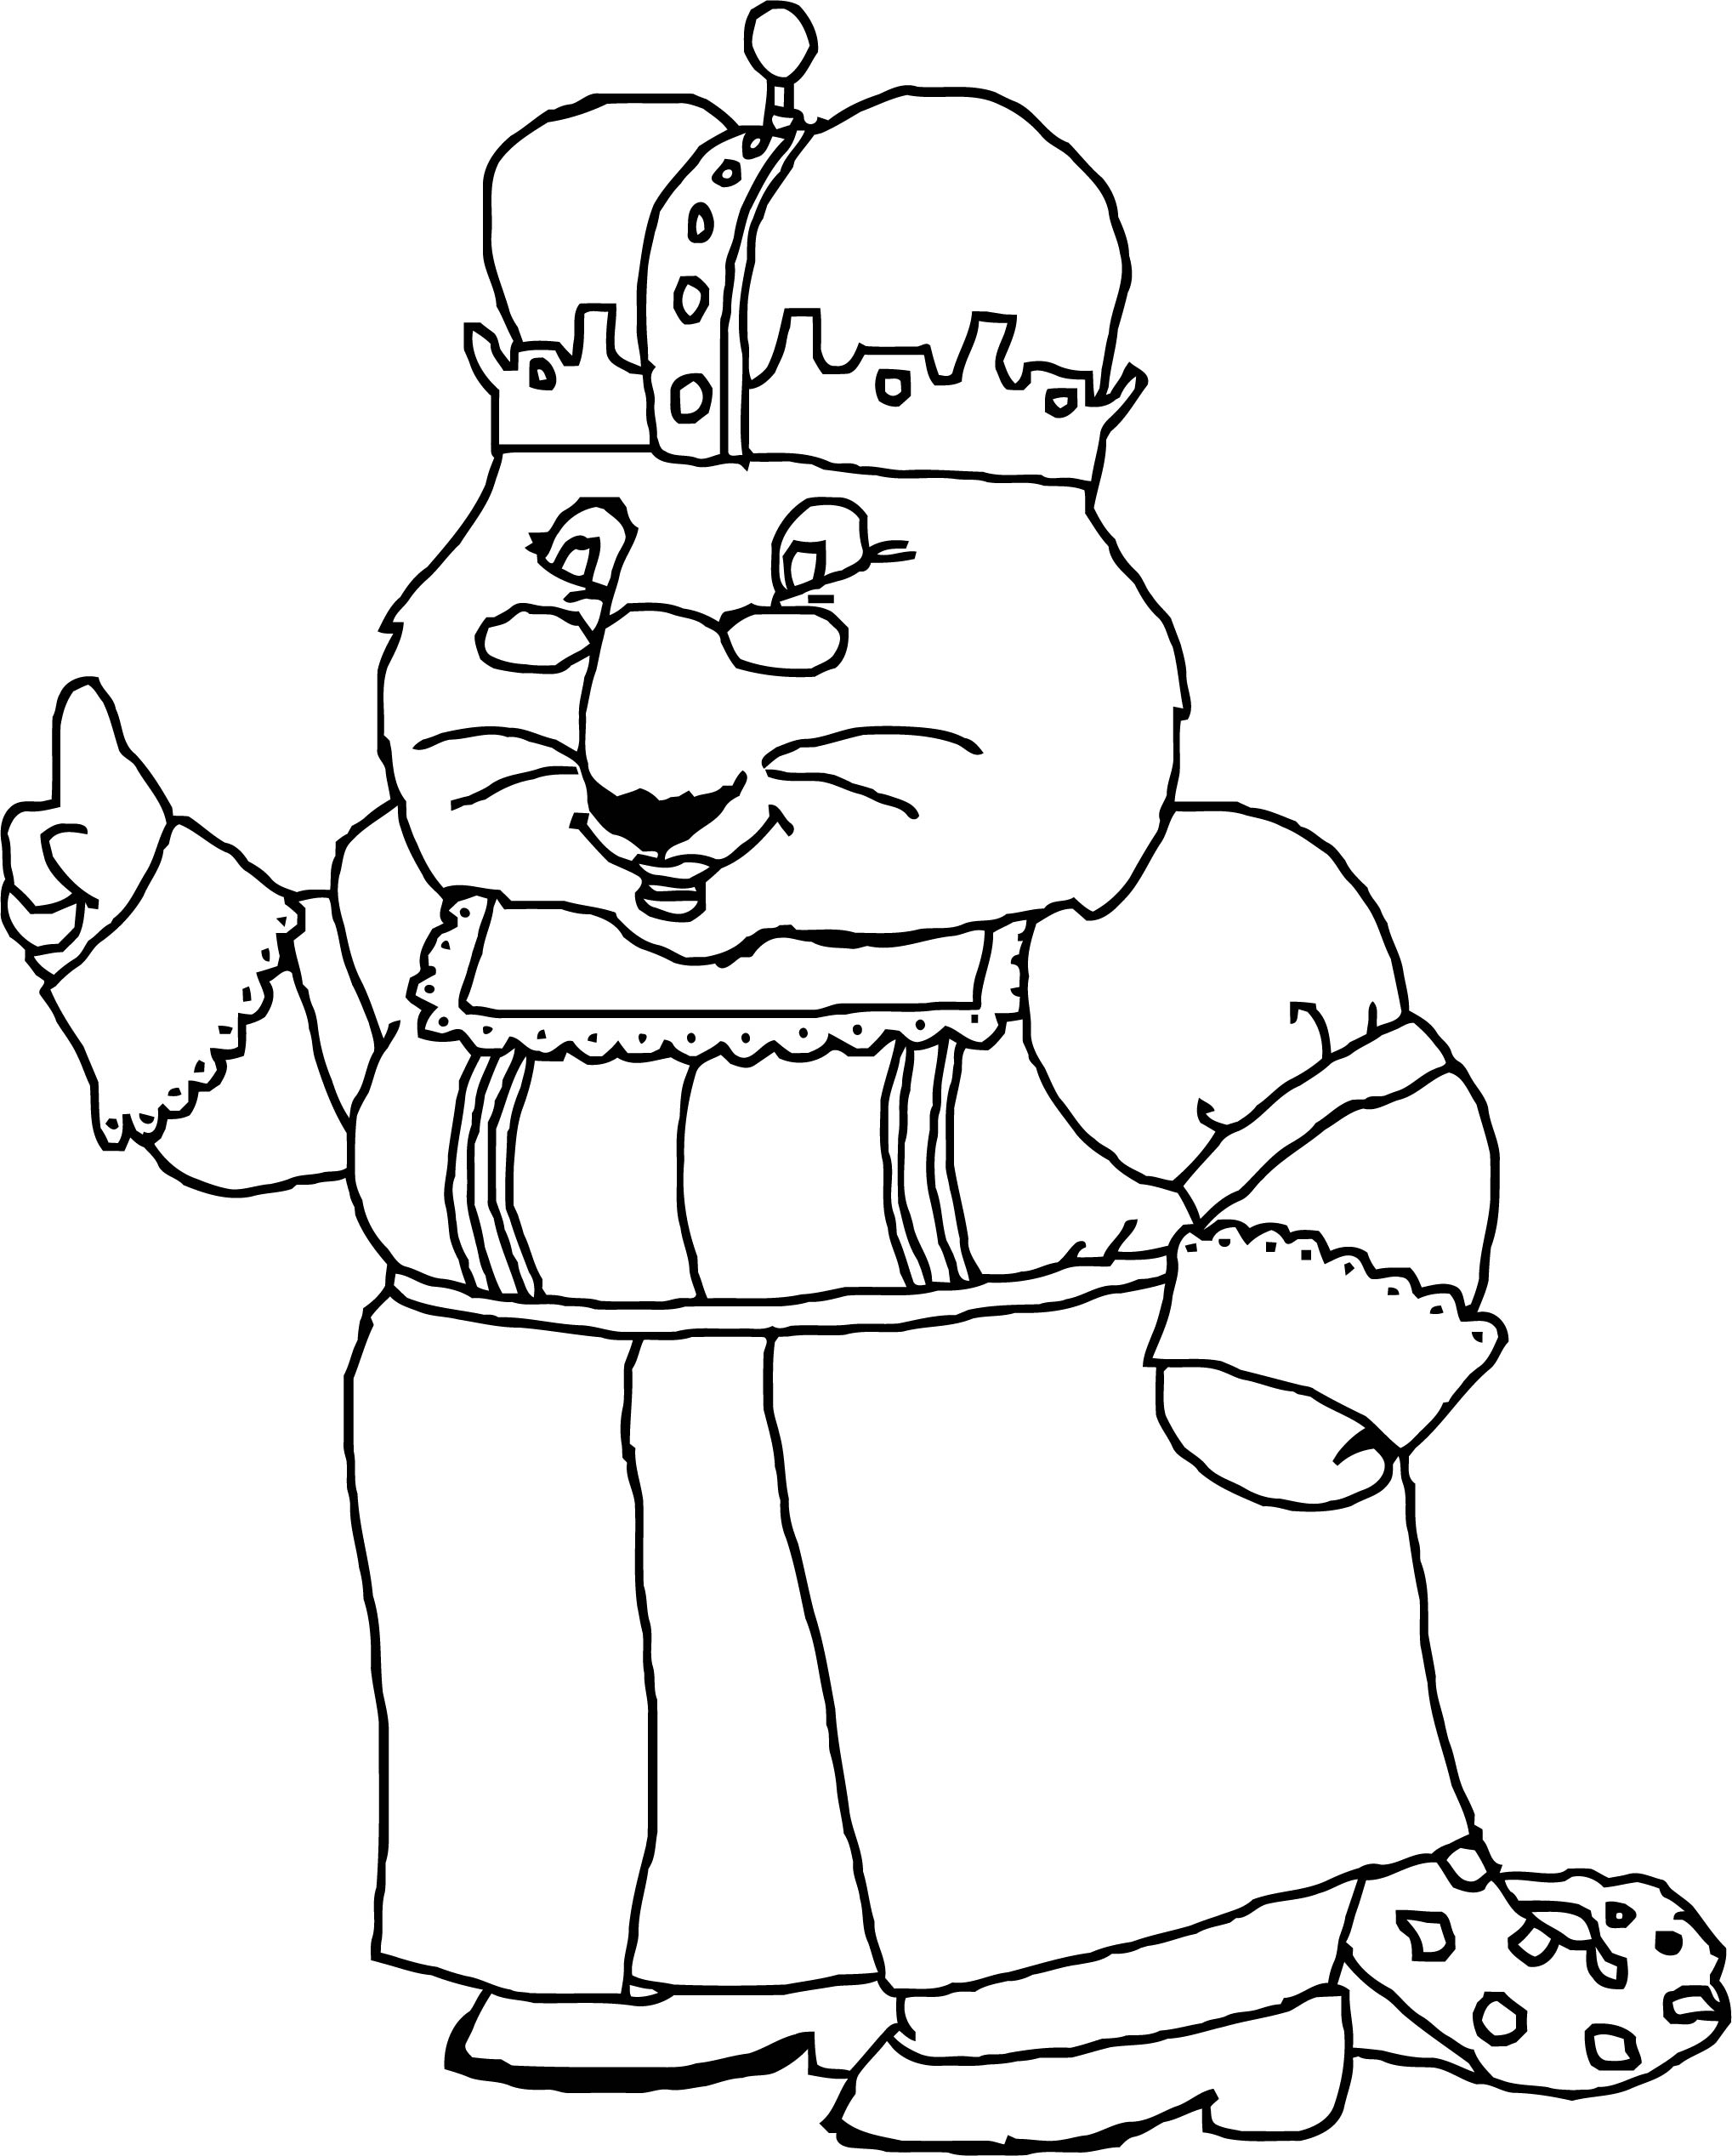 Queen Grandma Max And Ruby Draw Coloring Page